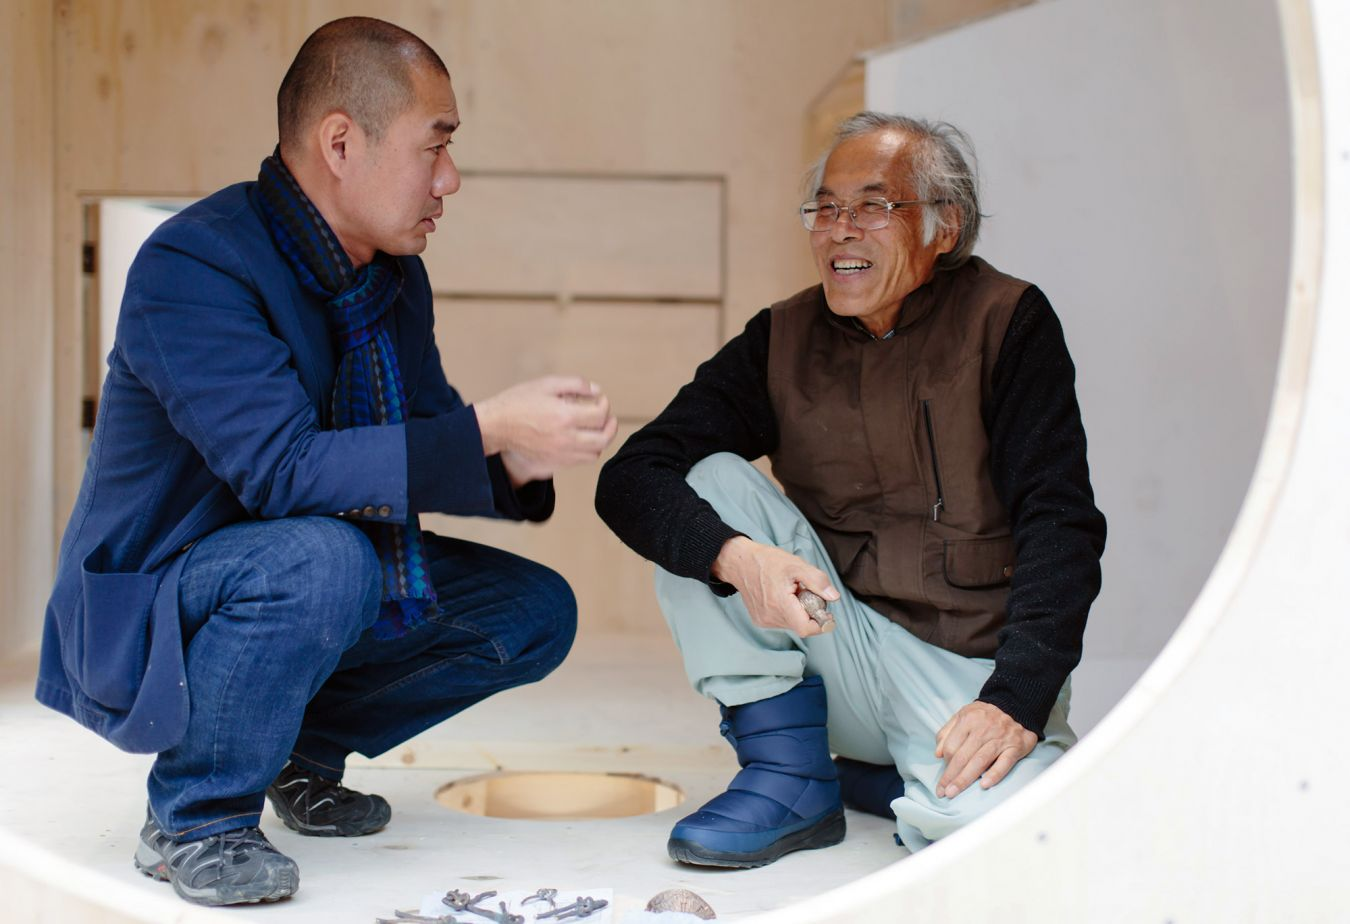 Kingston University lecturer Takeshi Hayatsu discusses the tea house build with Professor Fujimori – Image: Ben Tynegate